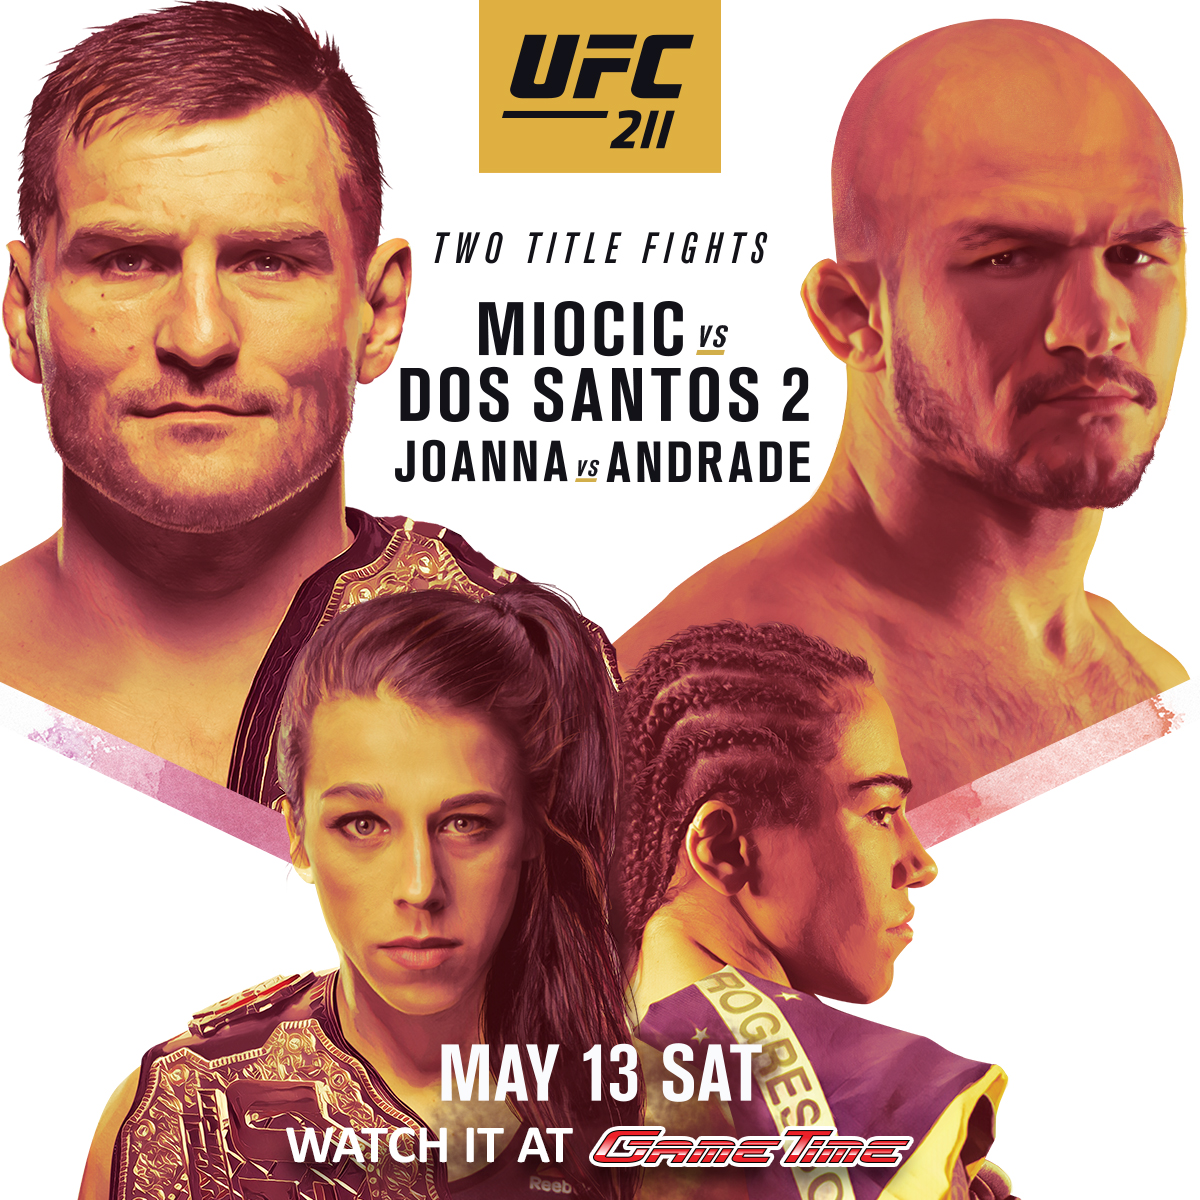 Watch UFC 211 Miocic vs Dos Santos 2 at GameTime!